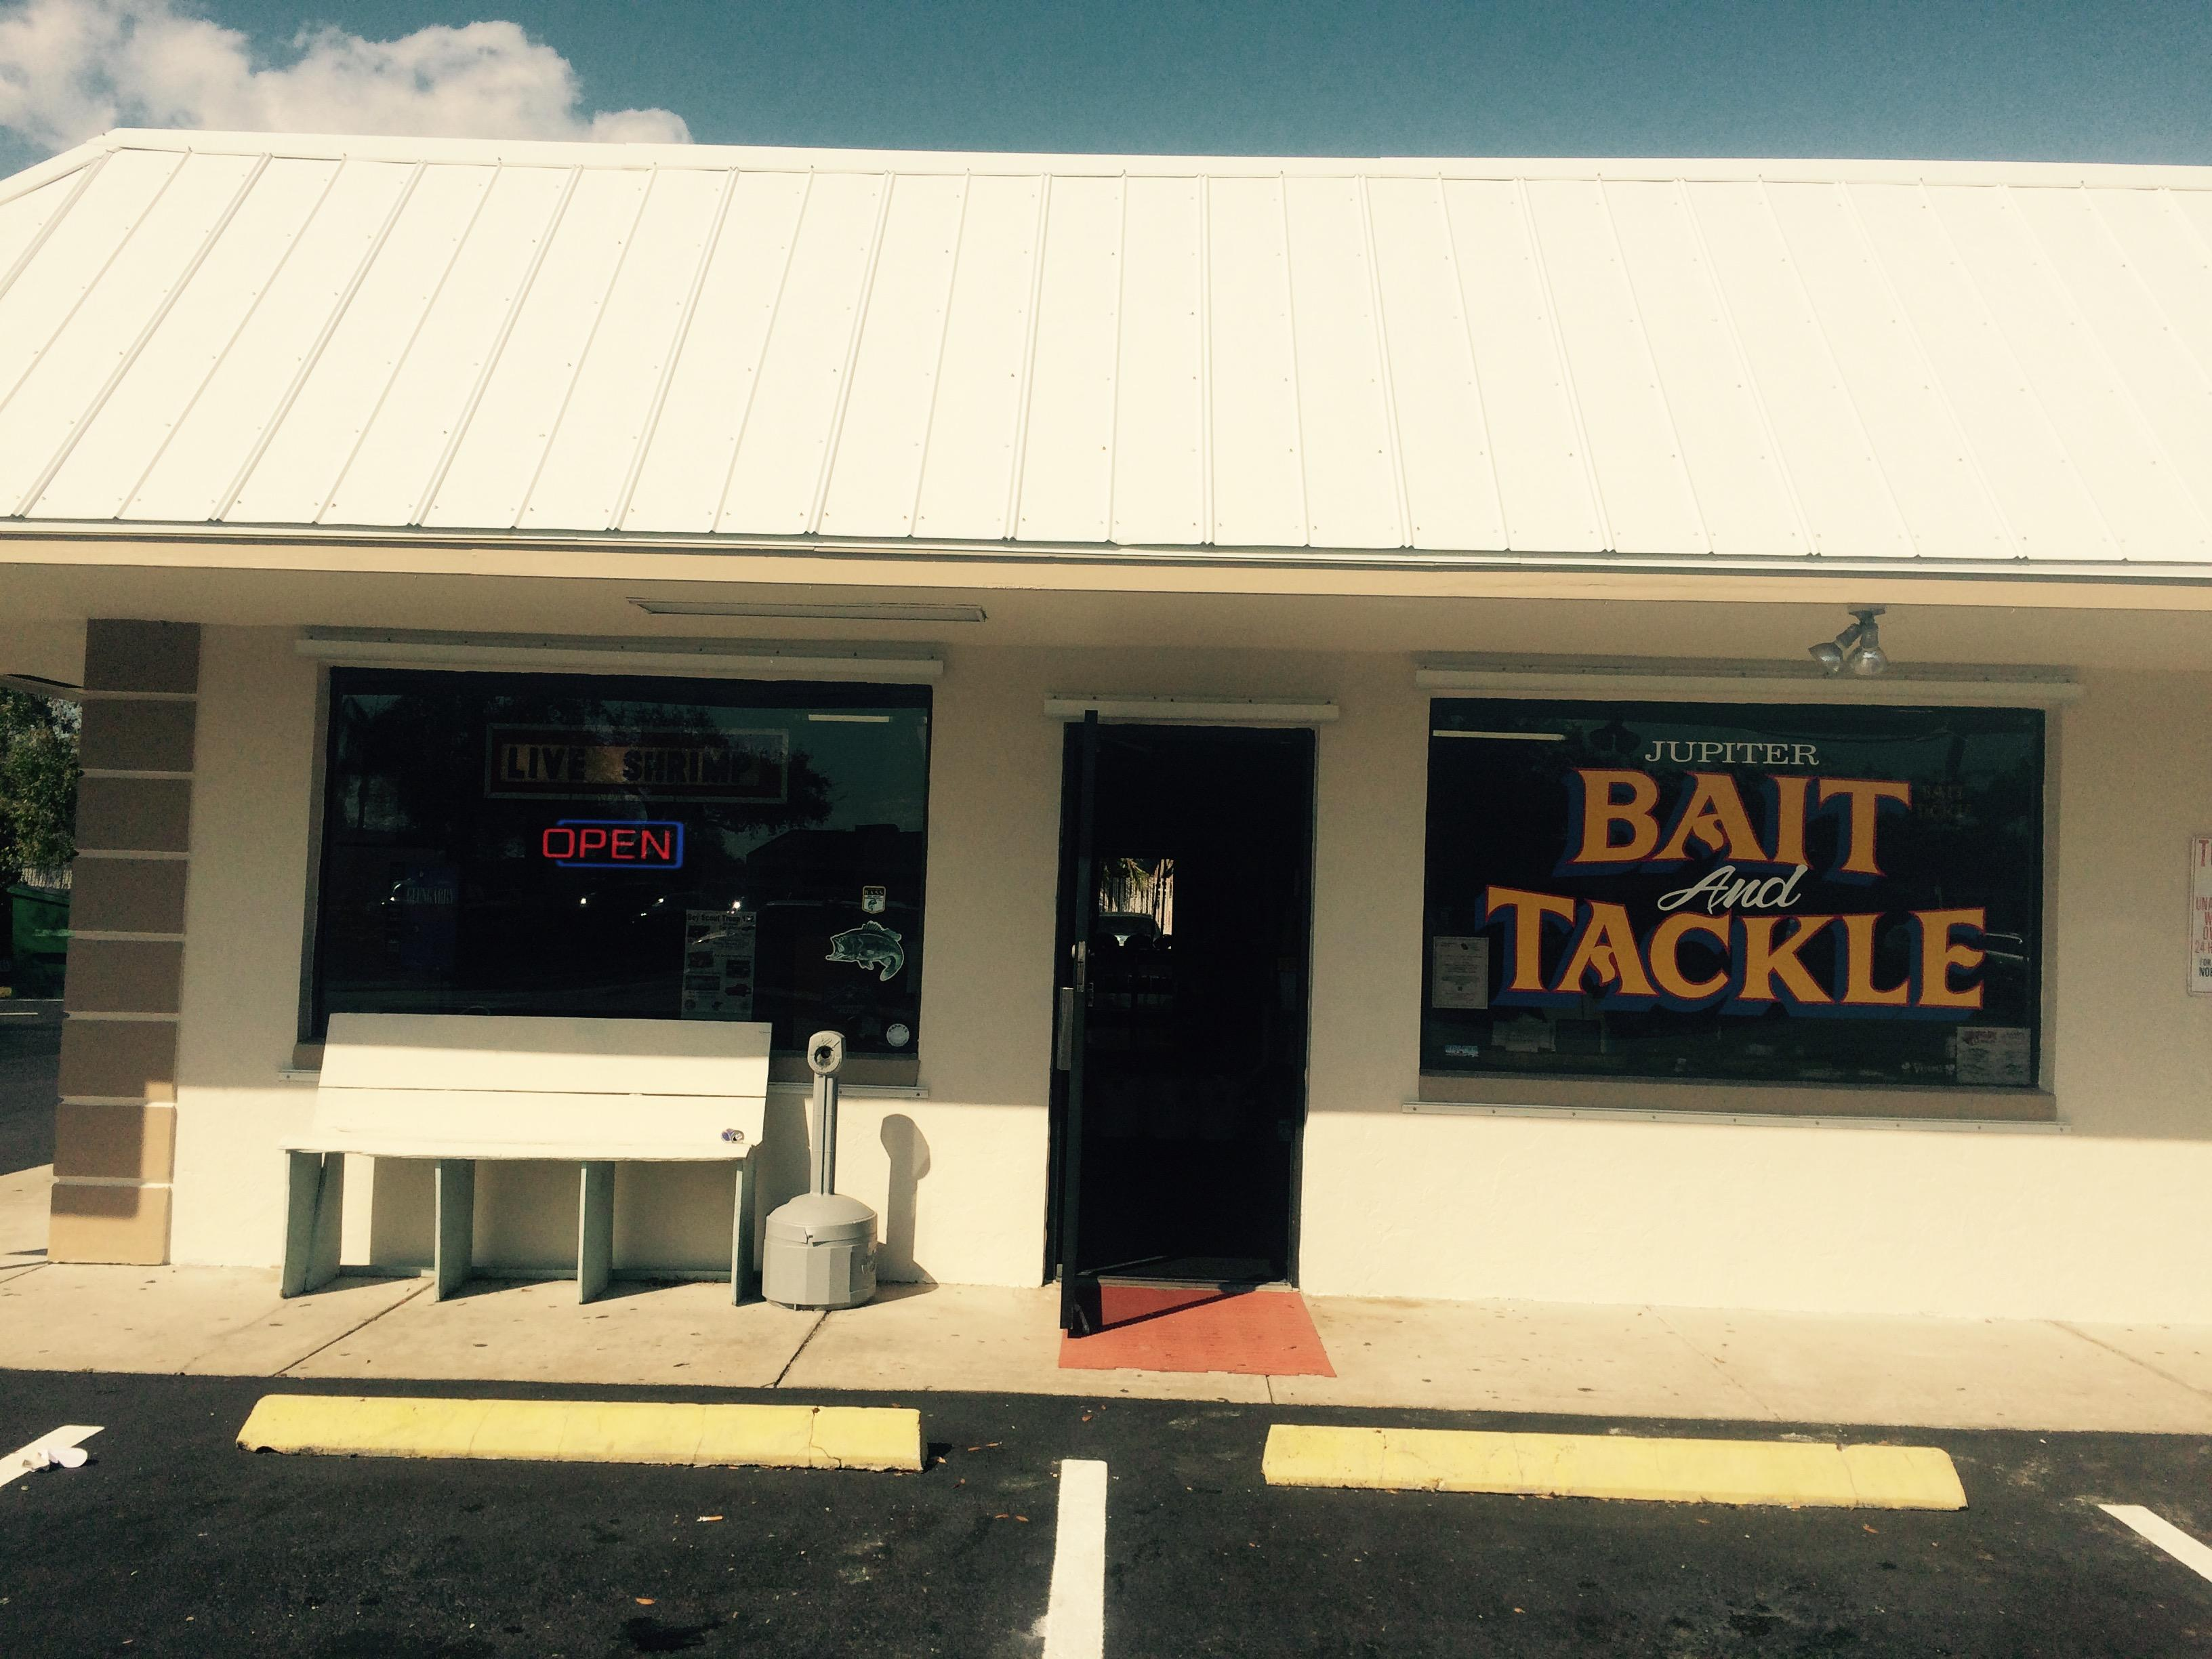 Jupiter bait and tackle coupons near me in jupiter 8coupons for Fishing tackle store near me